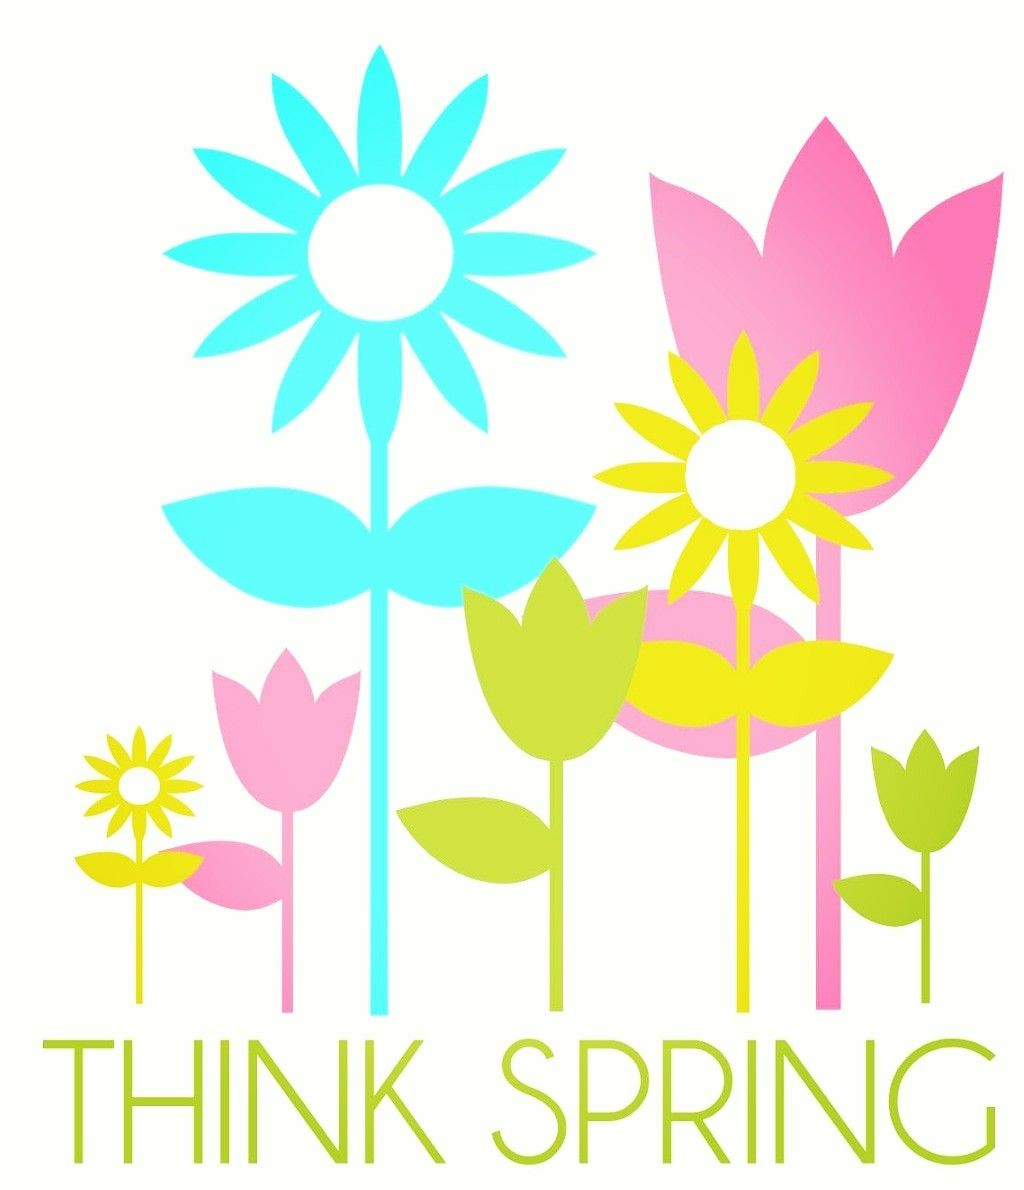 Are you thinking of spring of course you are were